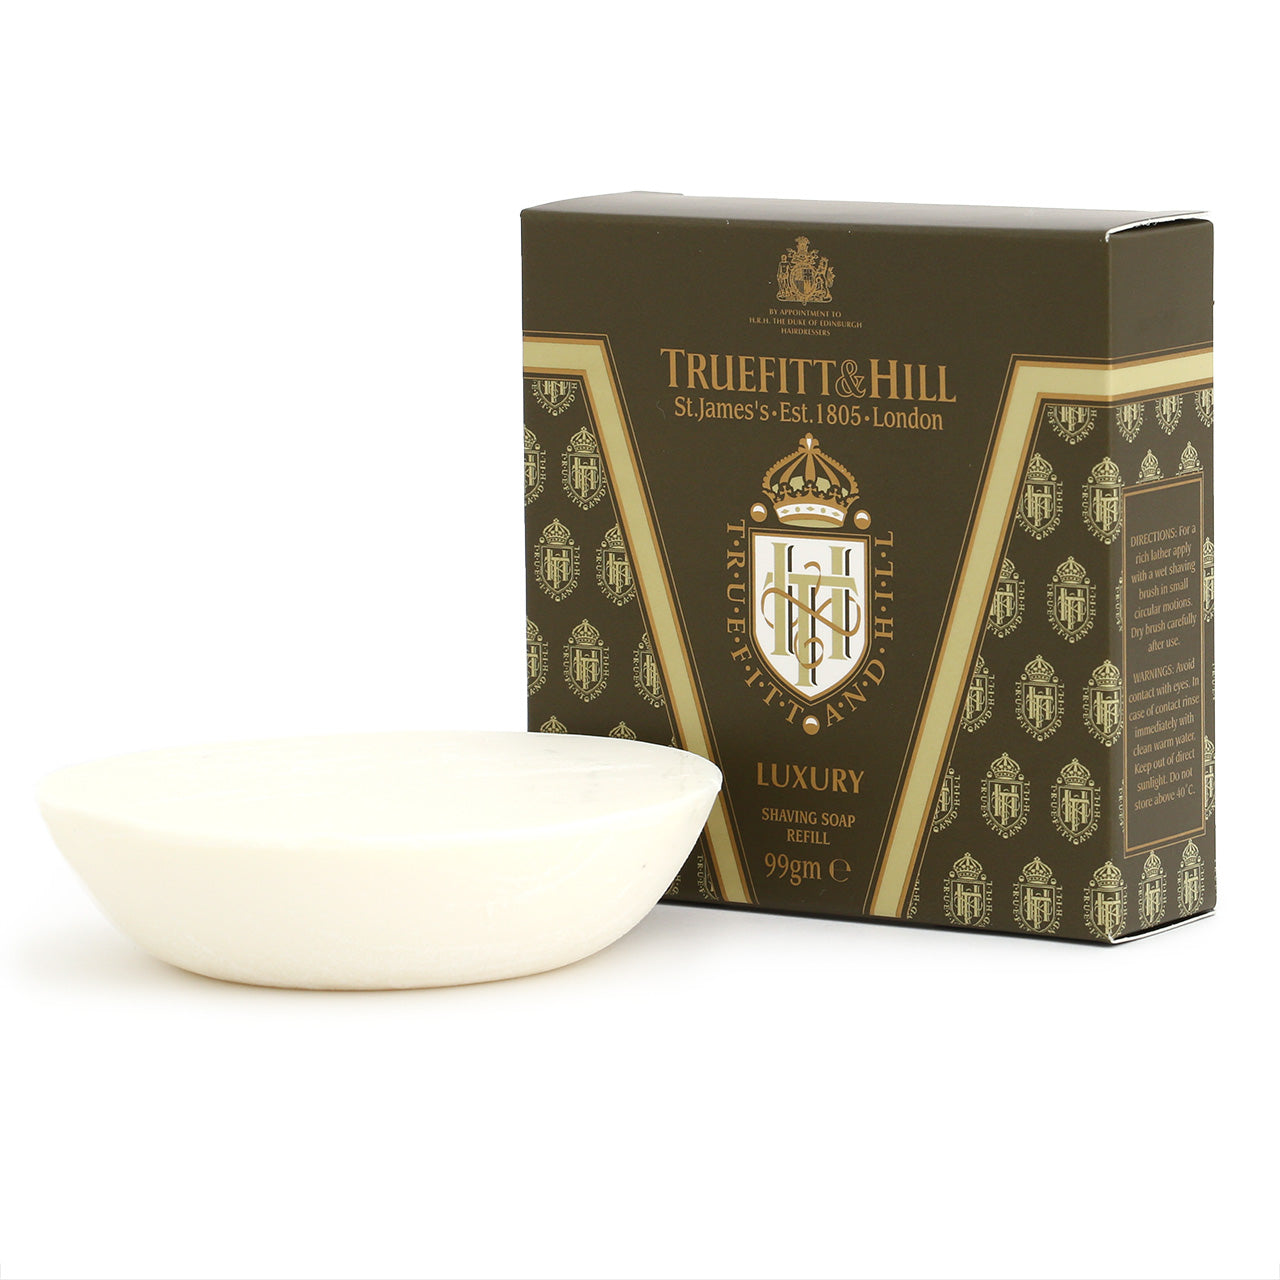 Truefitt & Hill Luxury shaving soap refill for wooden bowl